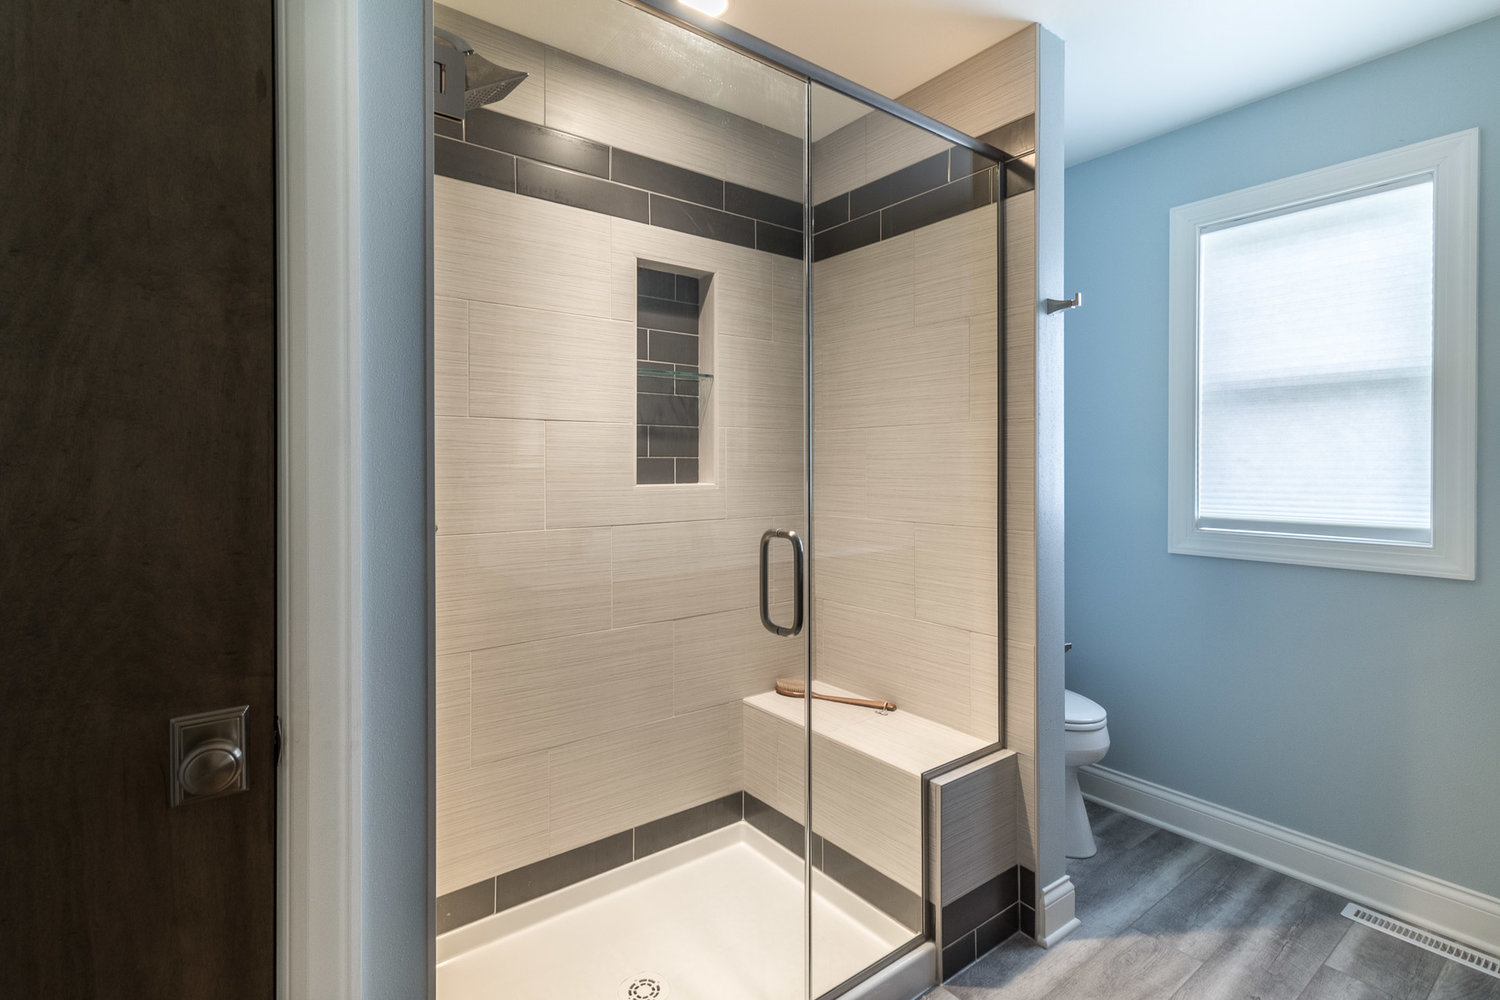 Reduce Noise By Soundproofing Your Bathroom When Remodeling